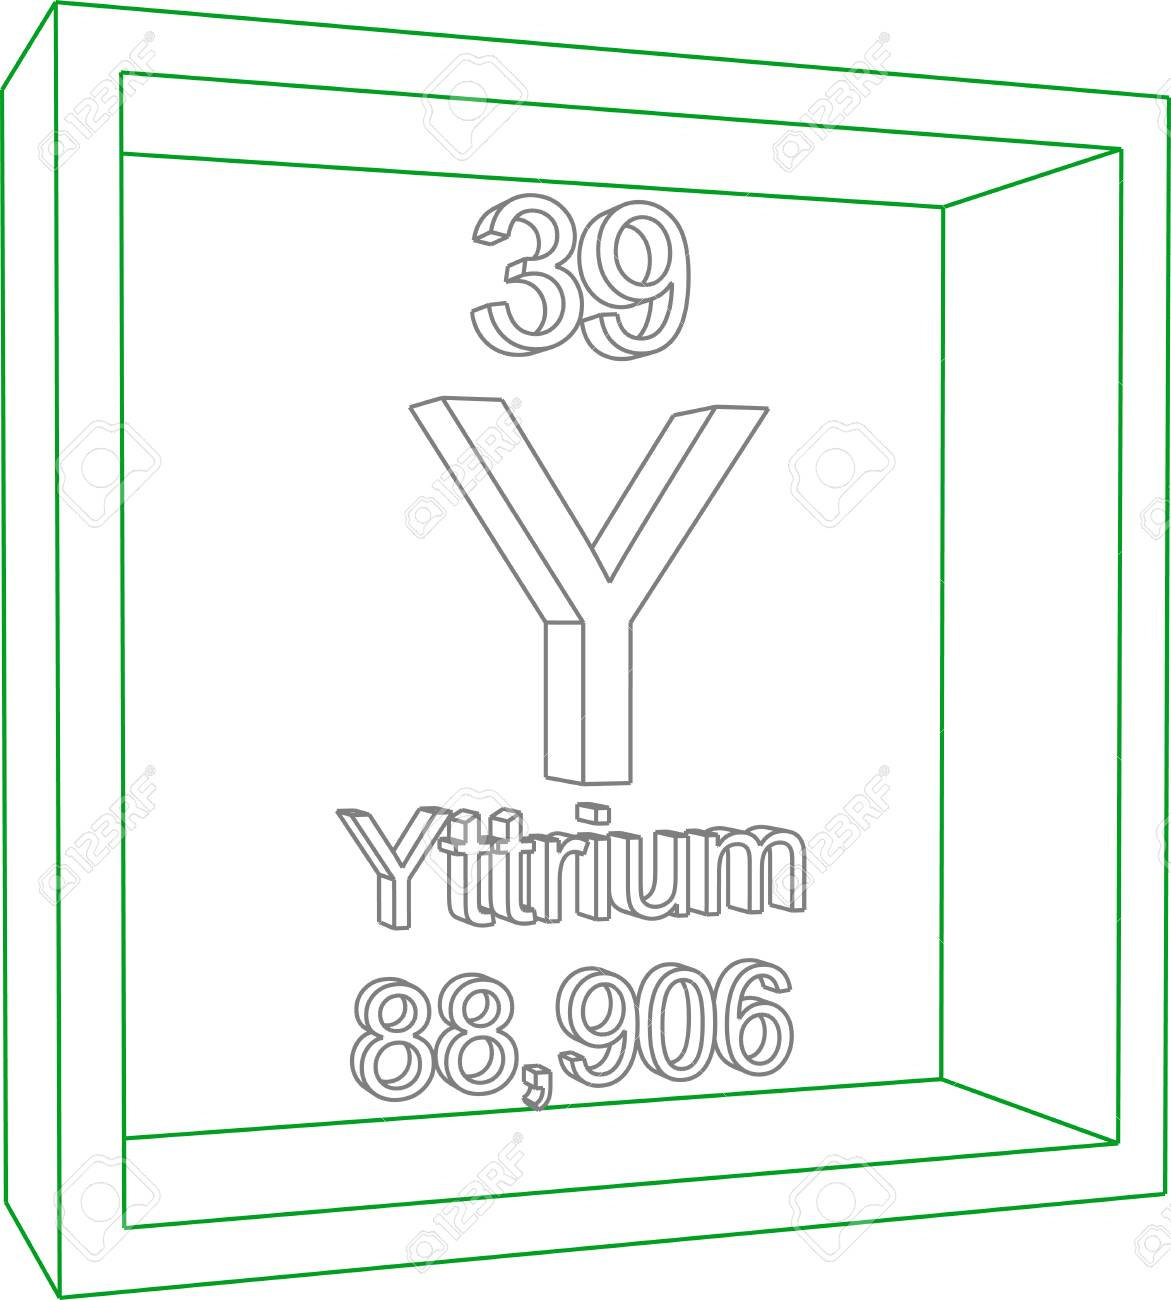 Periodic table of elements yttrium royalty free cliparts vectors periodic table of elements yttrium stock vector 57962973 urtaz Images